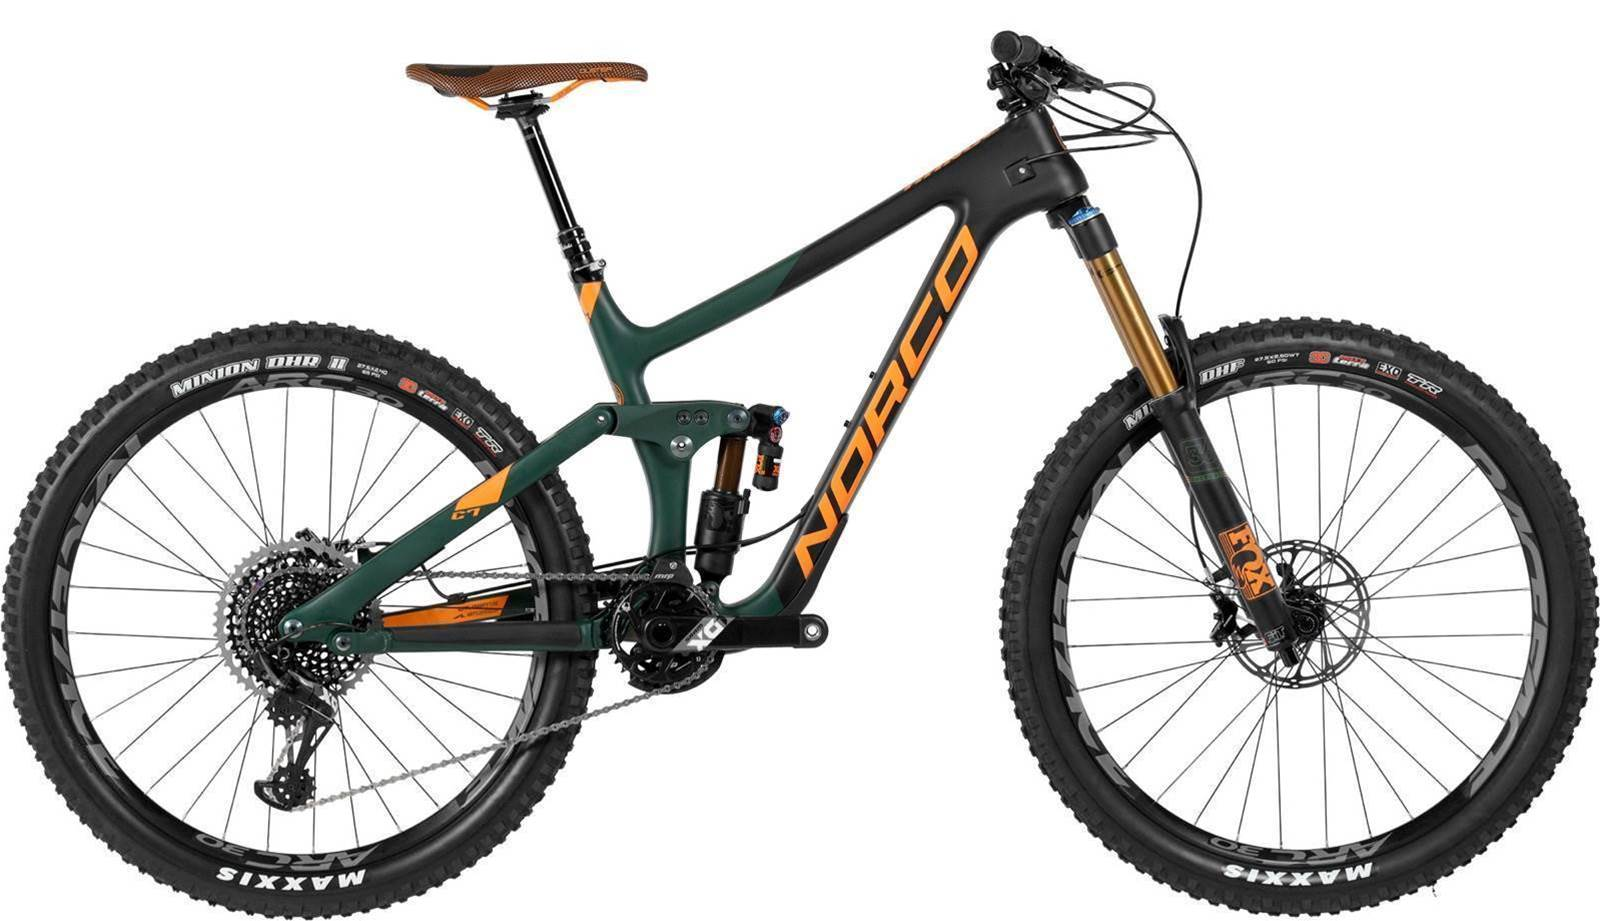 Norco Range Carbon: Your next enduro rig